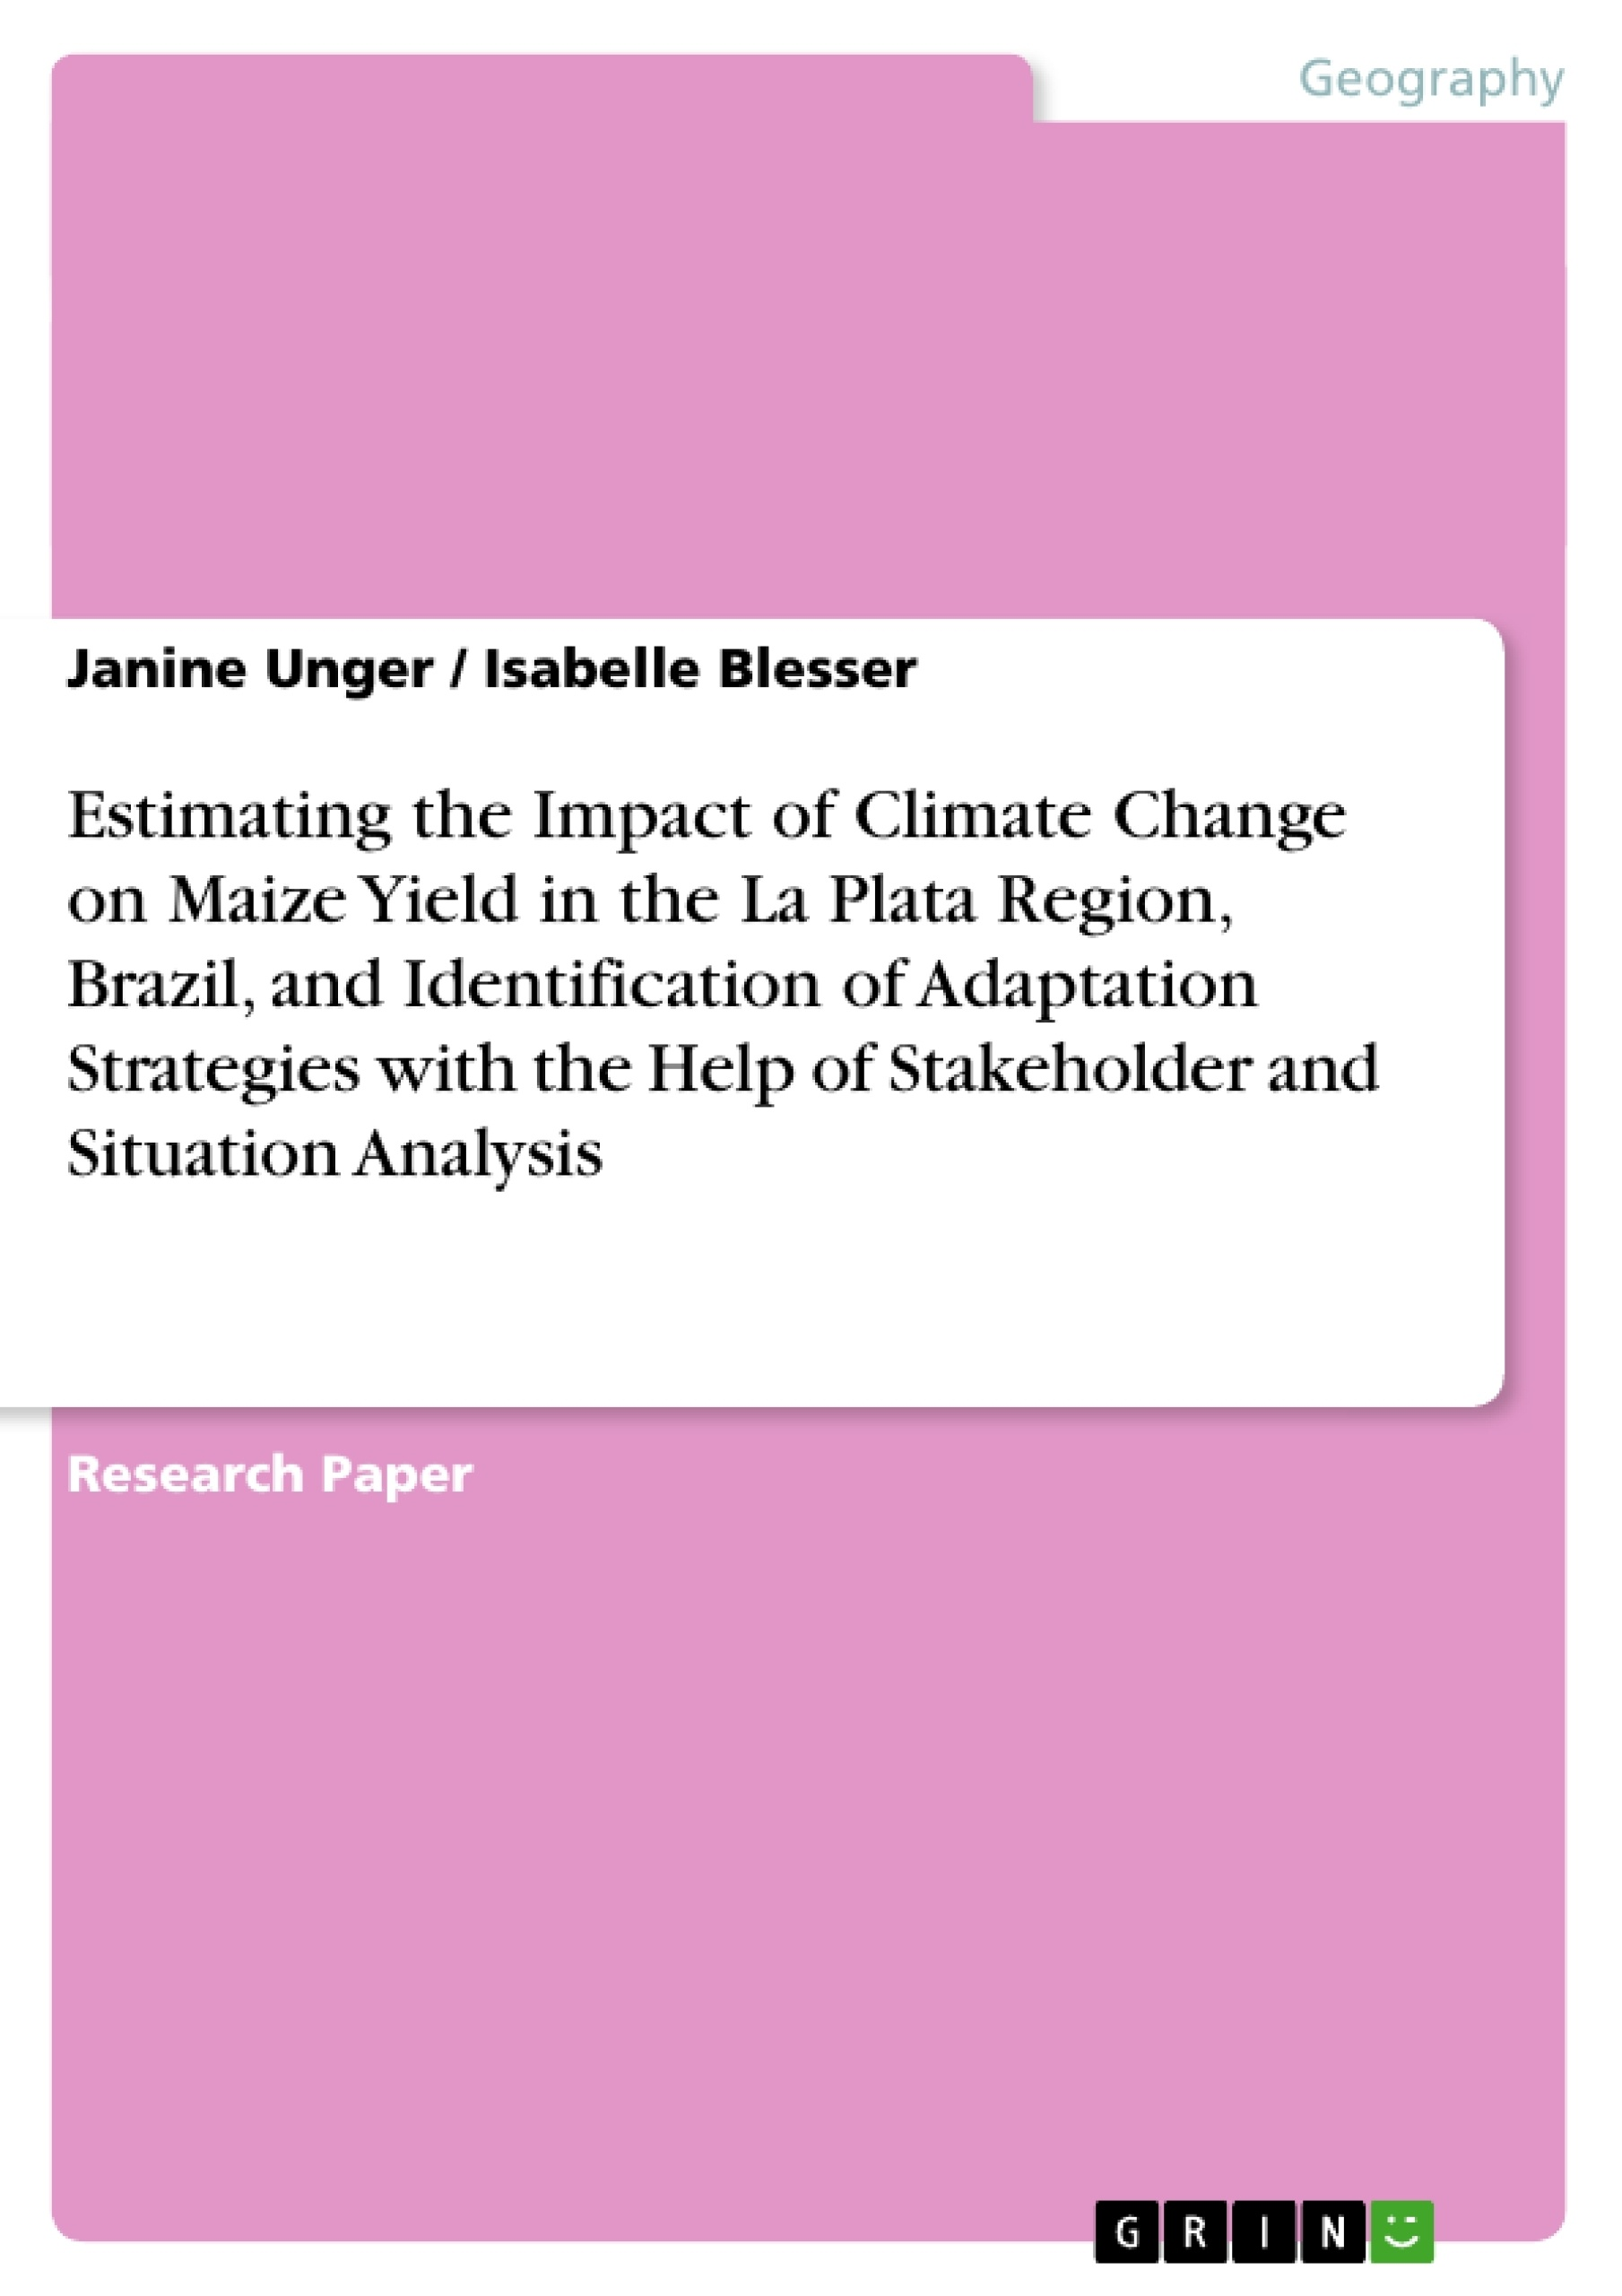 master thesis climate change Msc in public mnagement, university of potsdam bin zhou (2012): urban heat islands: a study based on a vast number of urban agglomerations msc in geography of global change, university of freiburg julia marusczyk (2012): climate change adaptation as a process: cost implications for india's agriculture msc.